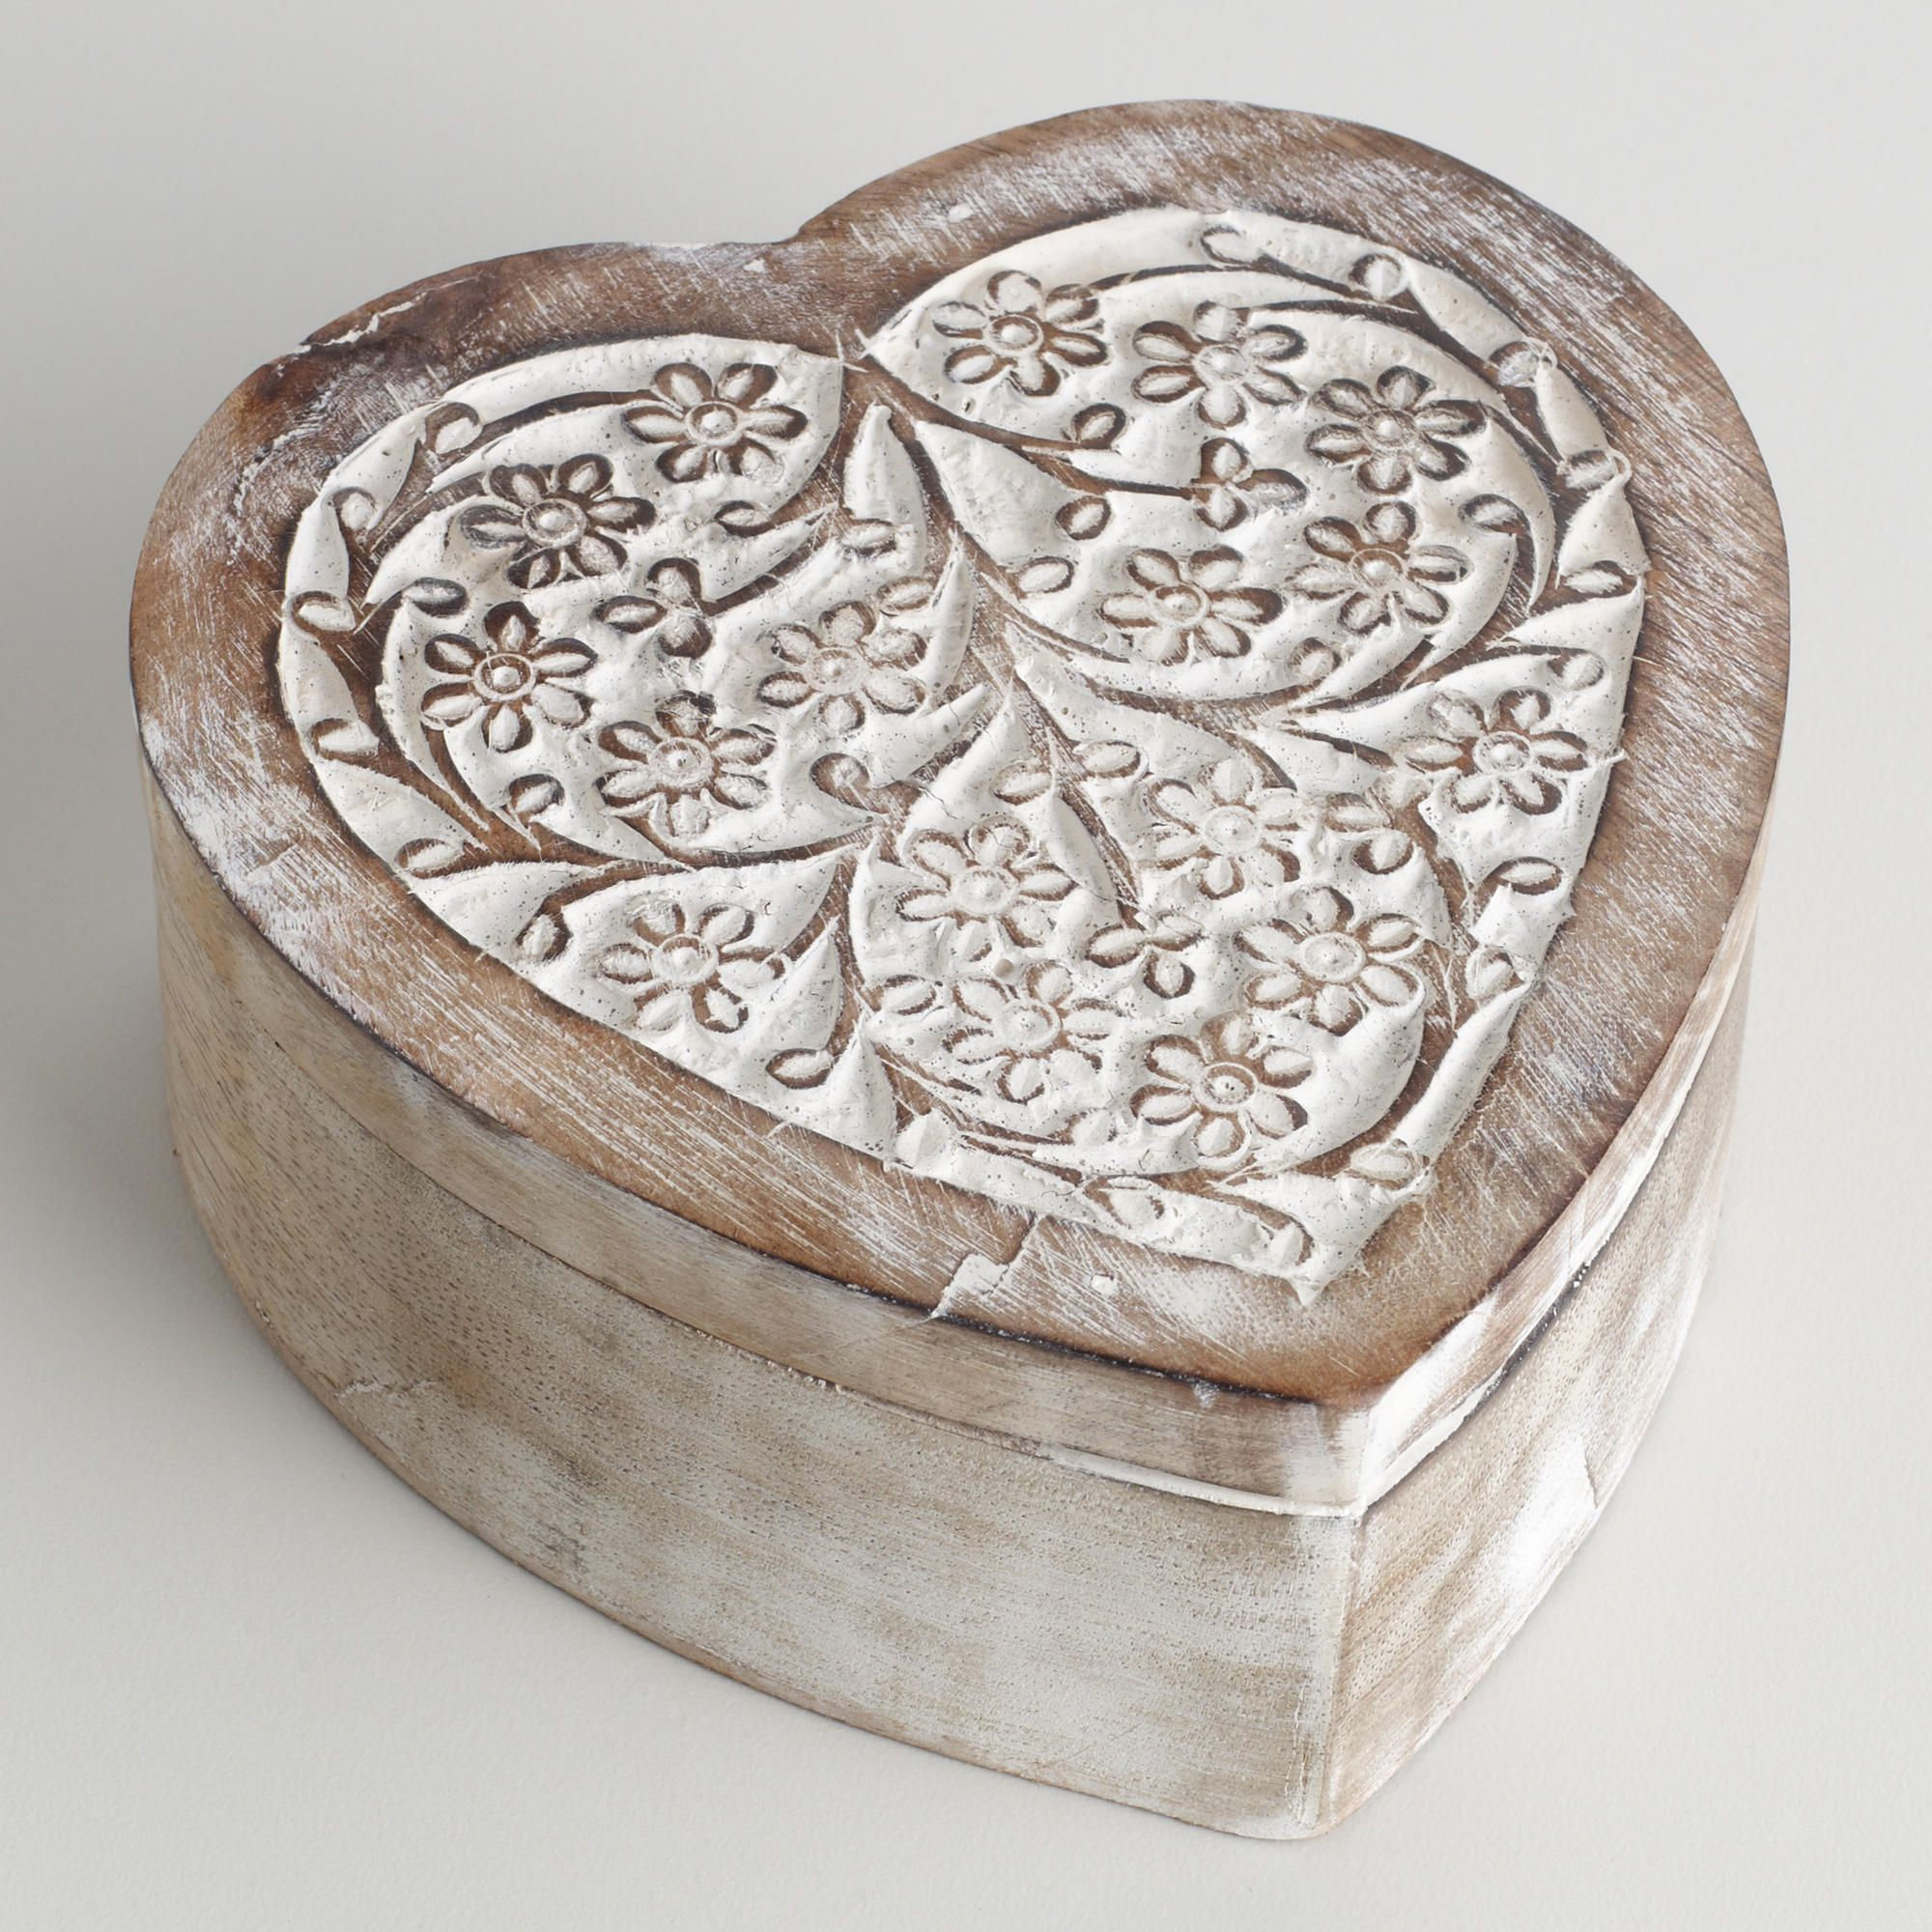 World Market Jewelry Box Classy Whitewash Helena Heart Jewelry Box  World Market  Finishing Review